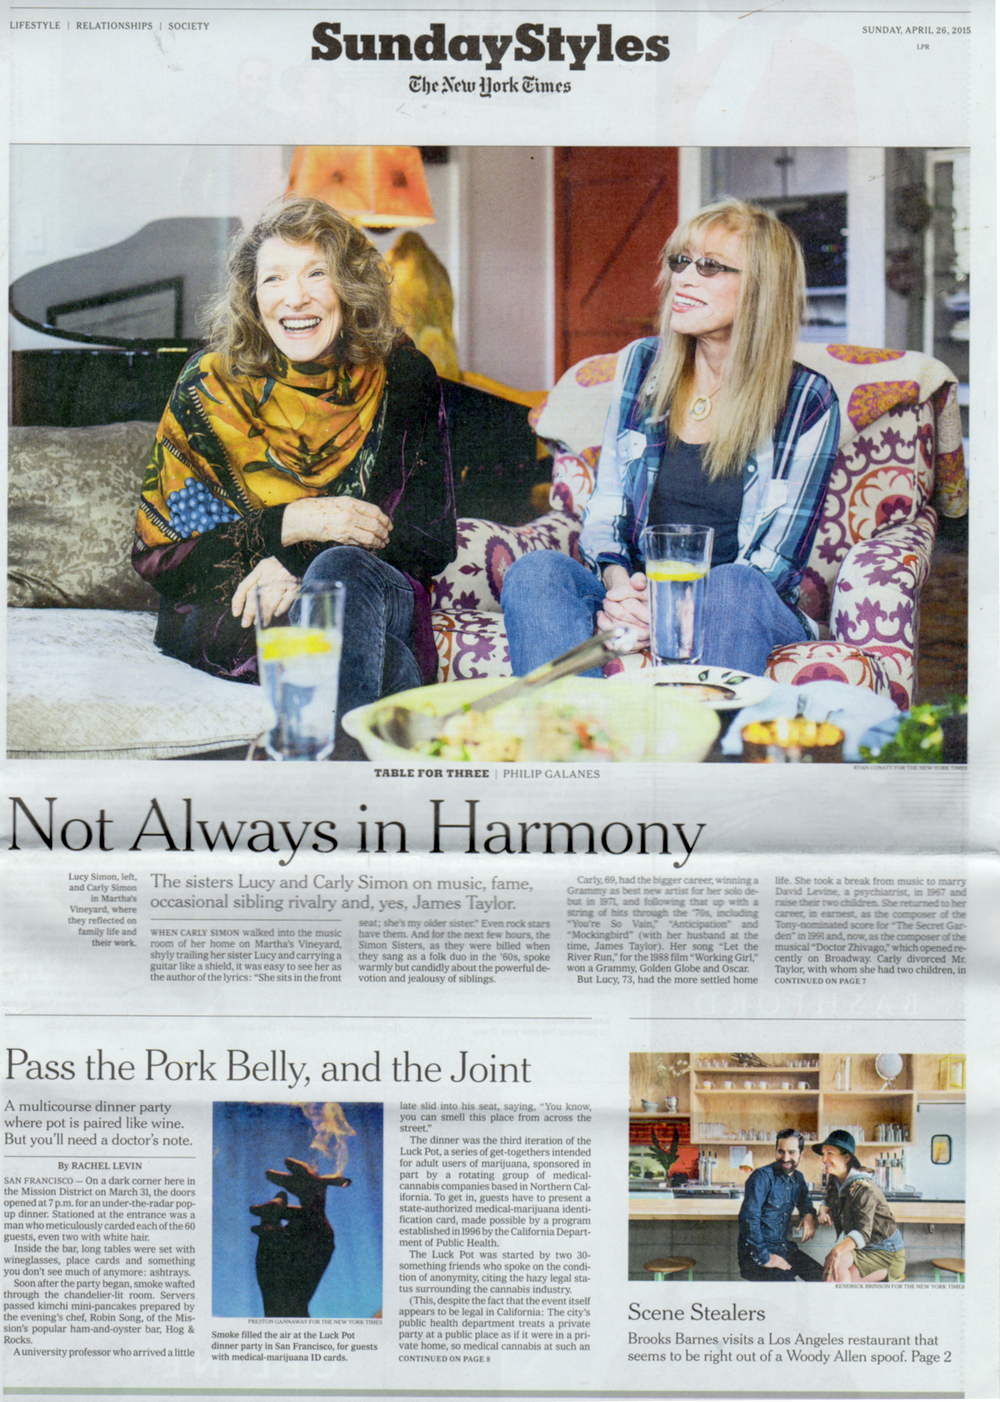 New York Times Sunday Styles